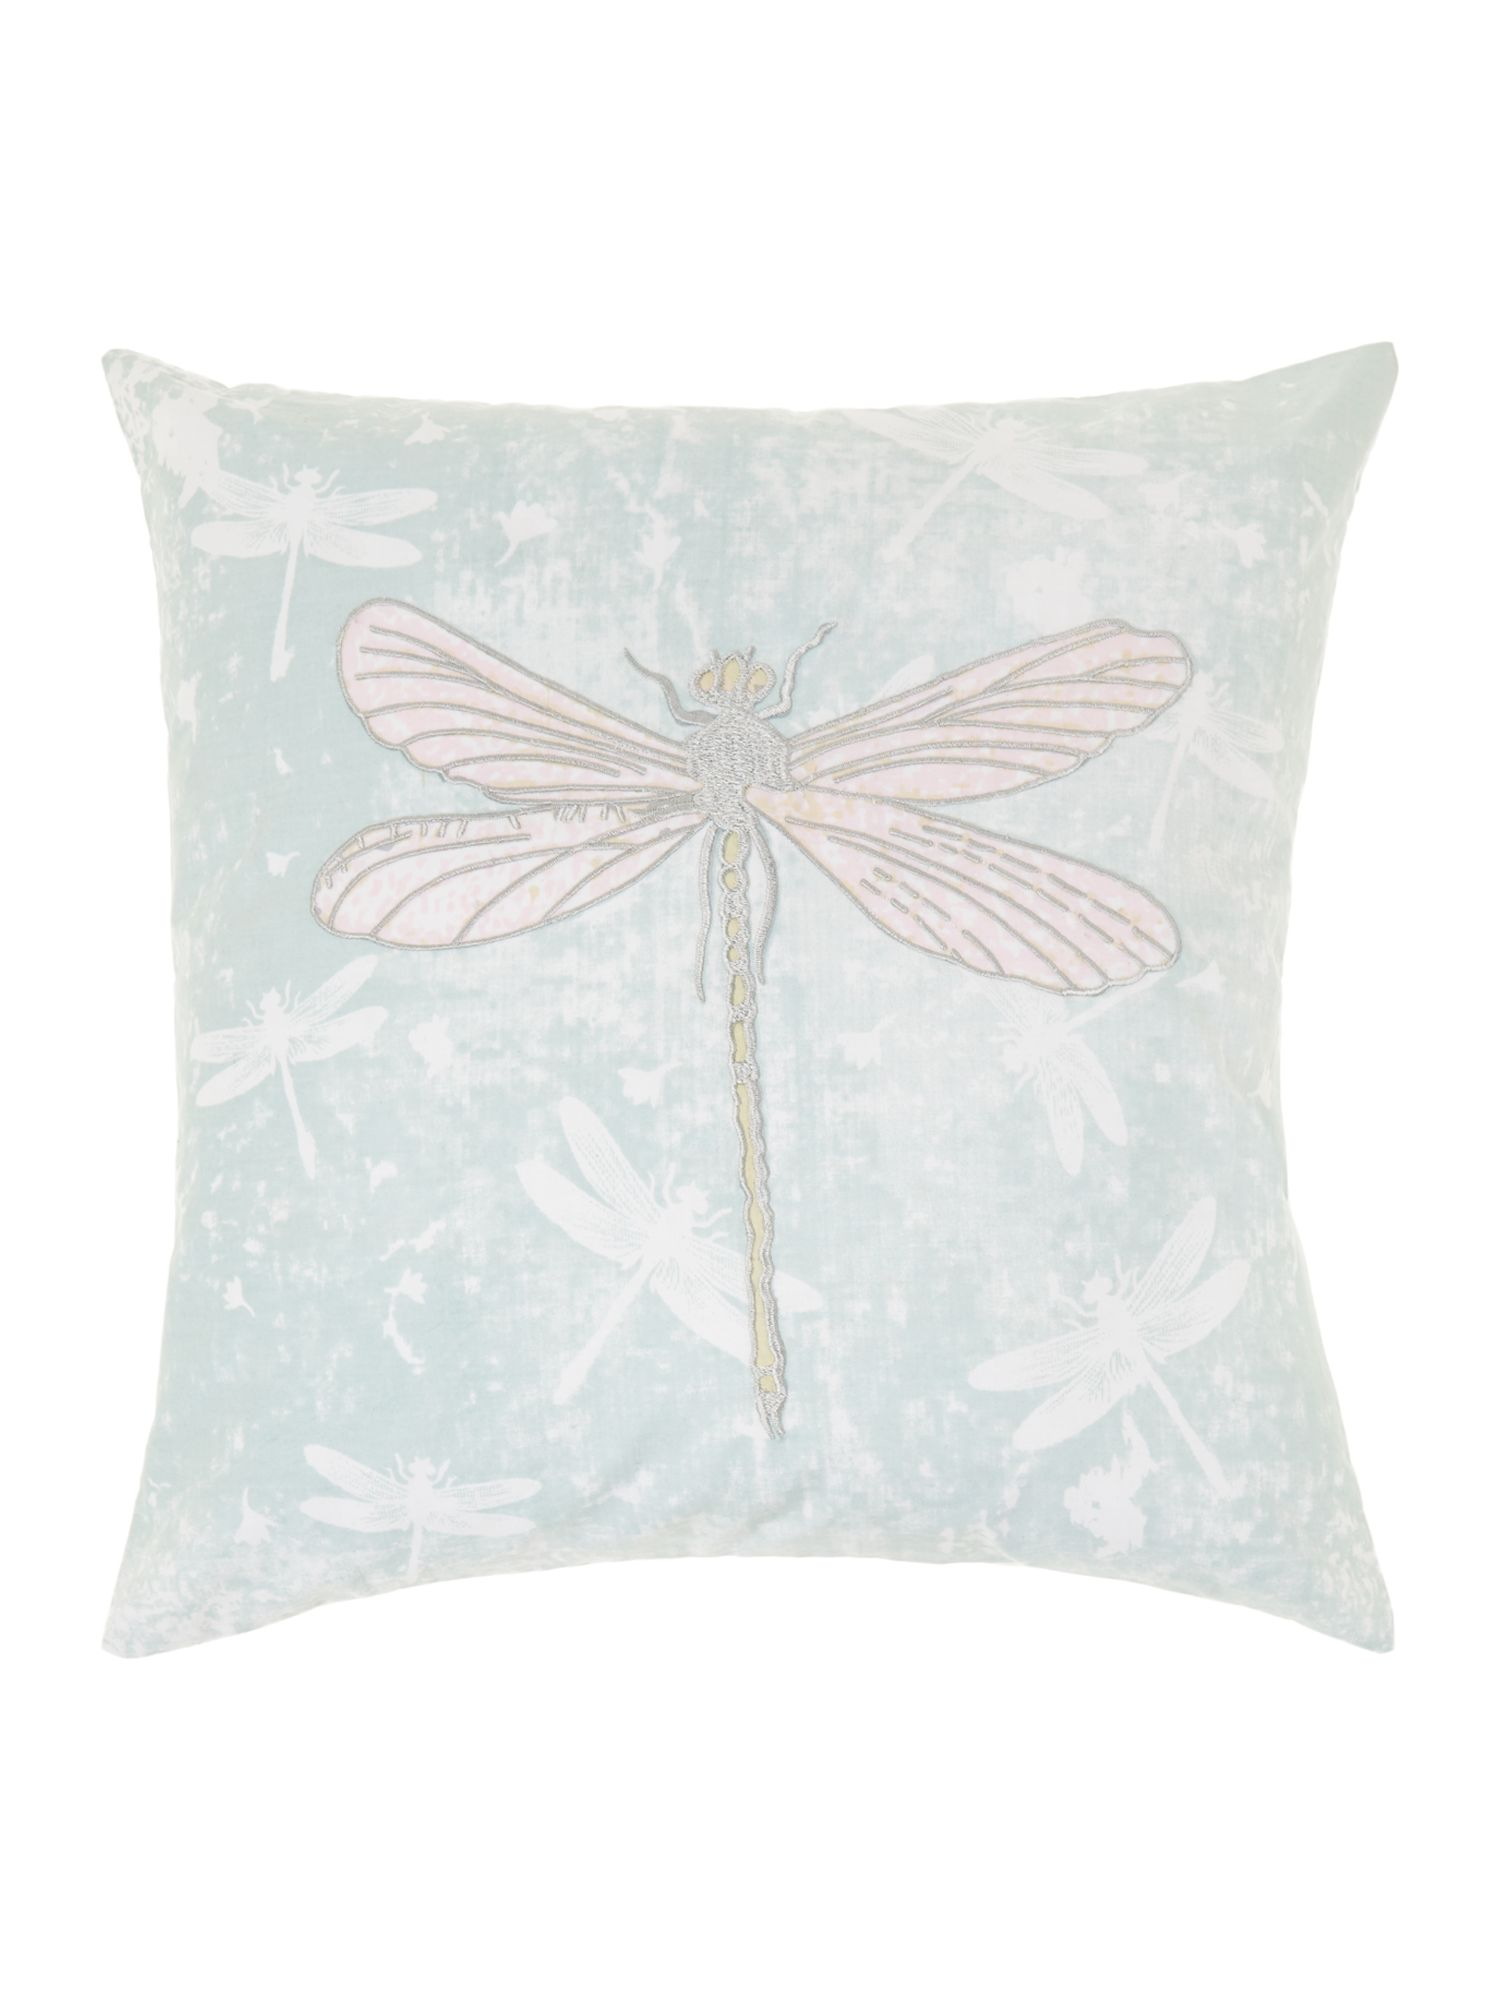 Embroidered dragonflies cushion